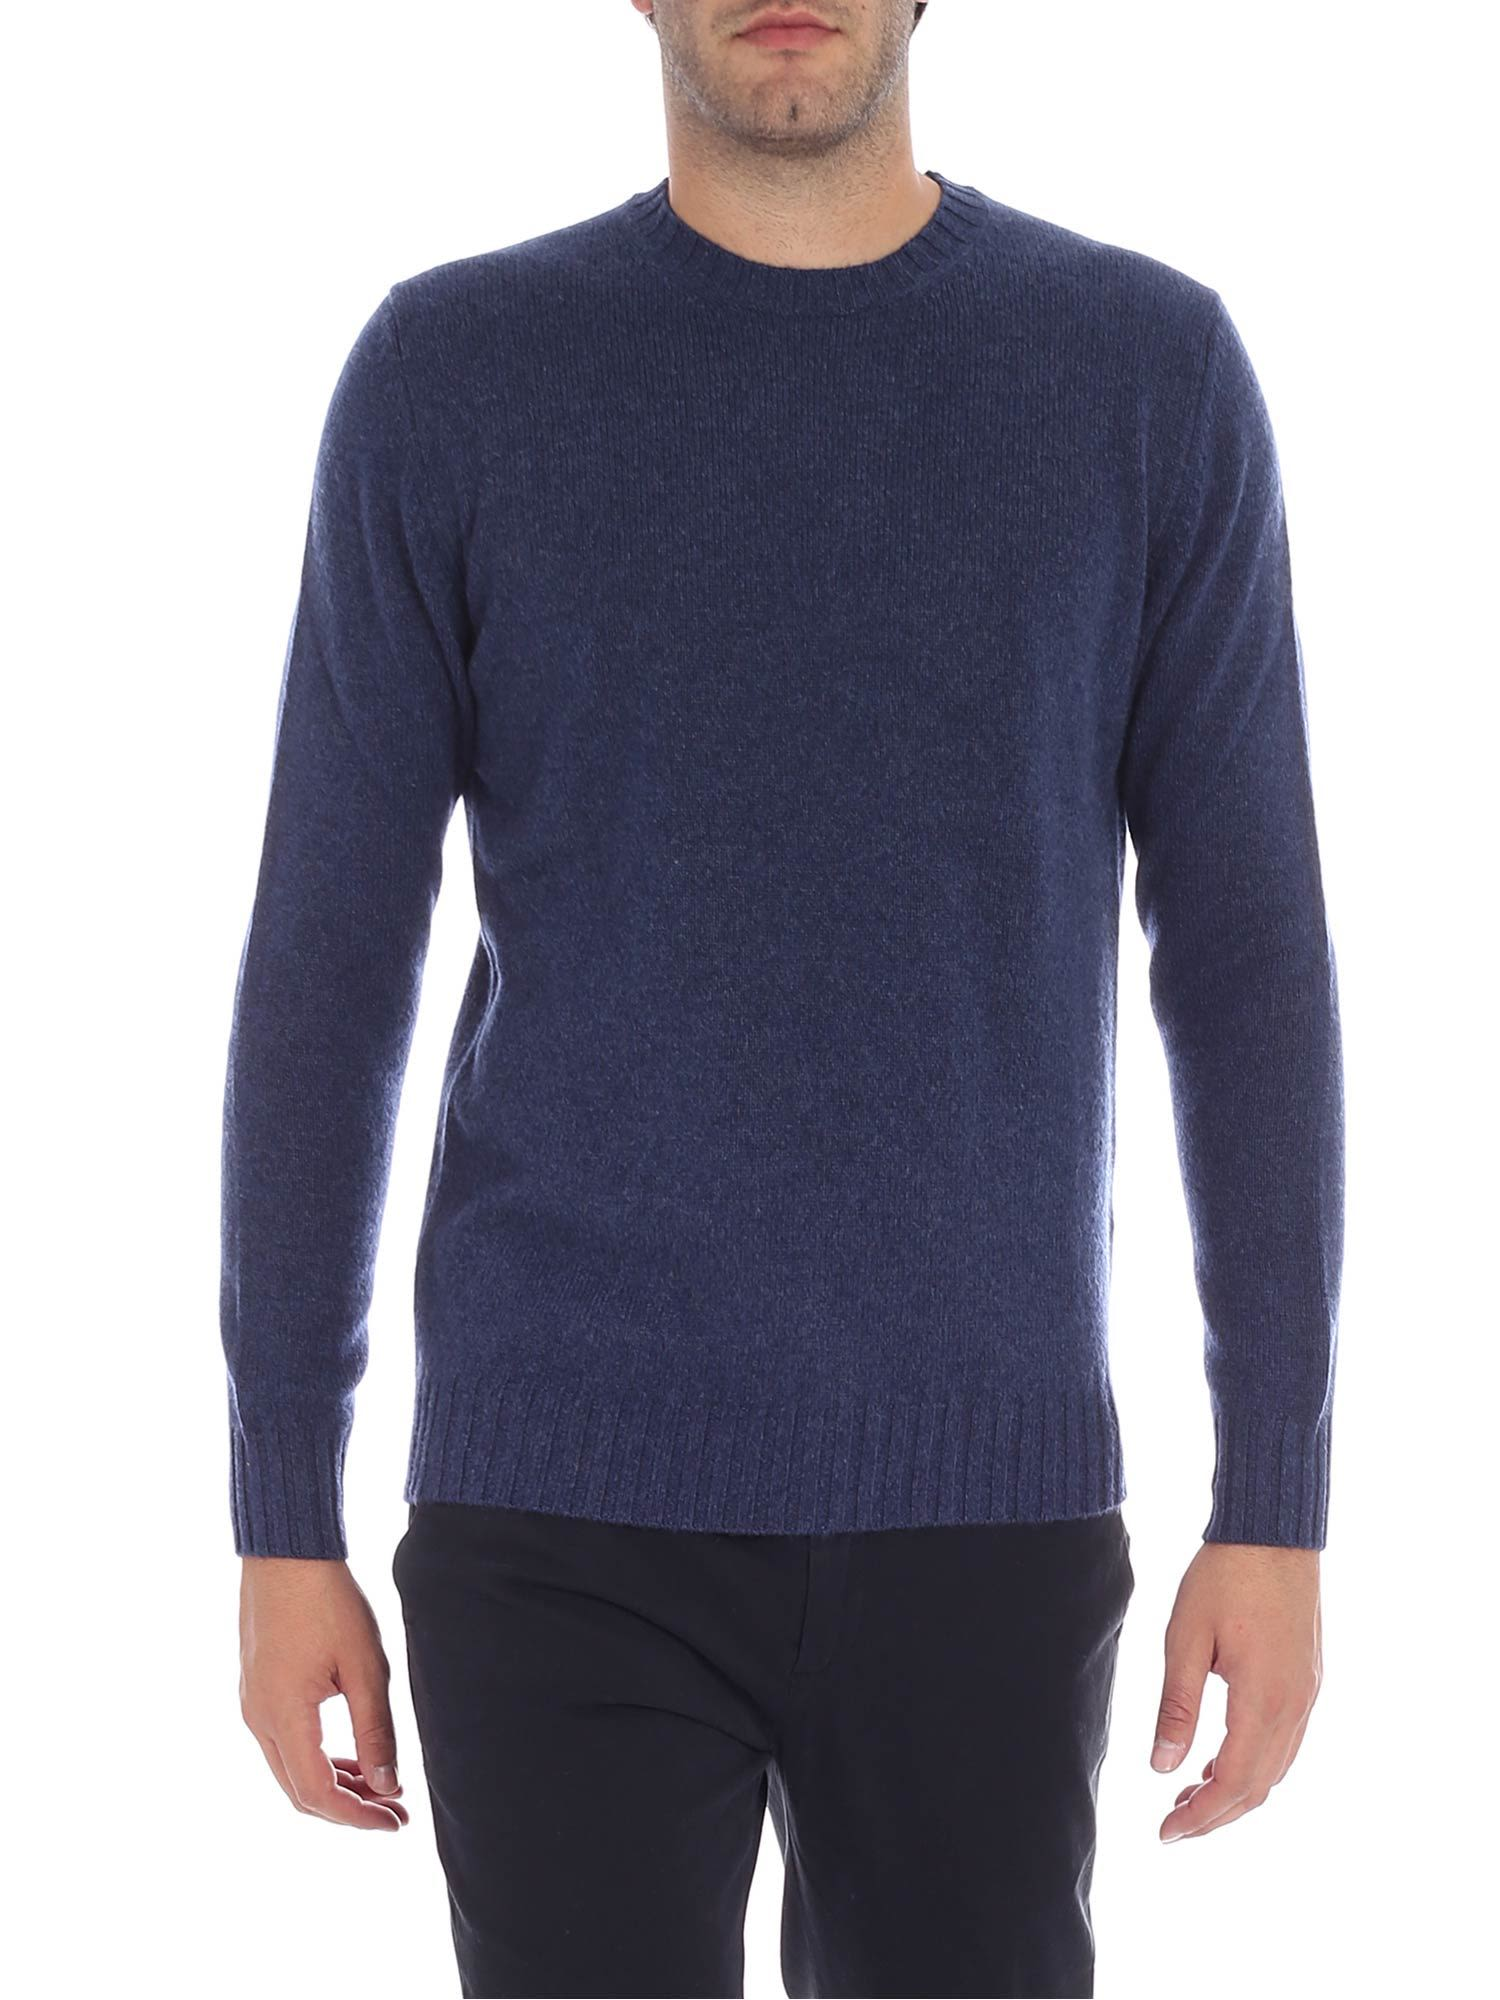 LUIGI BORRELLI Round Neck Sweater in Blue